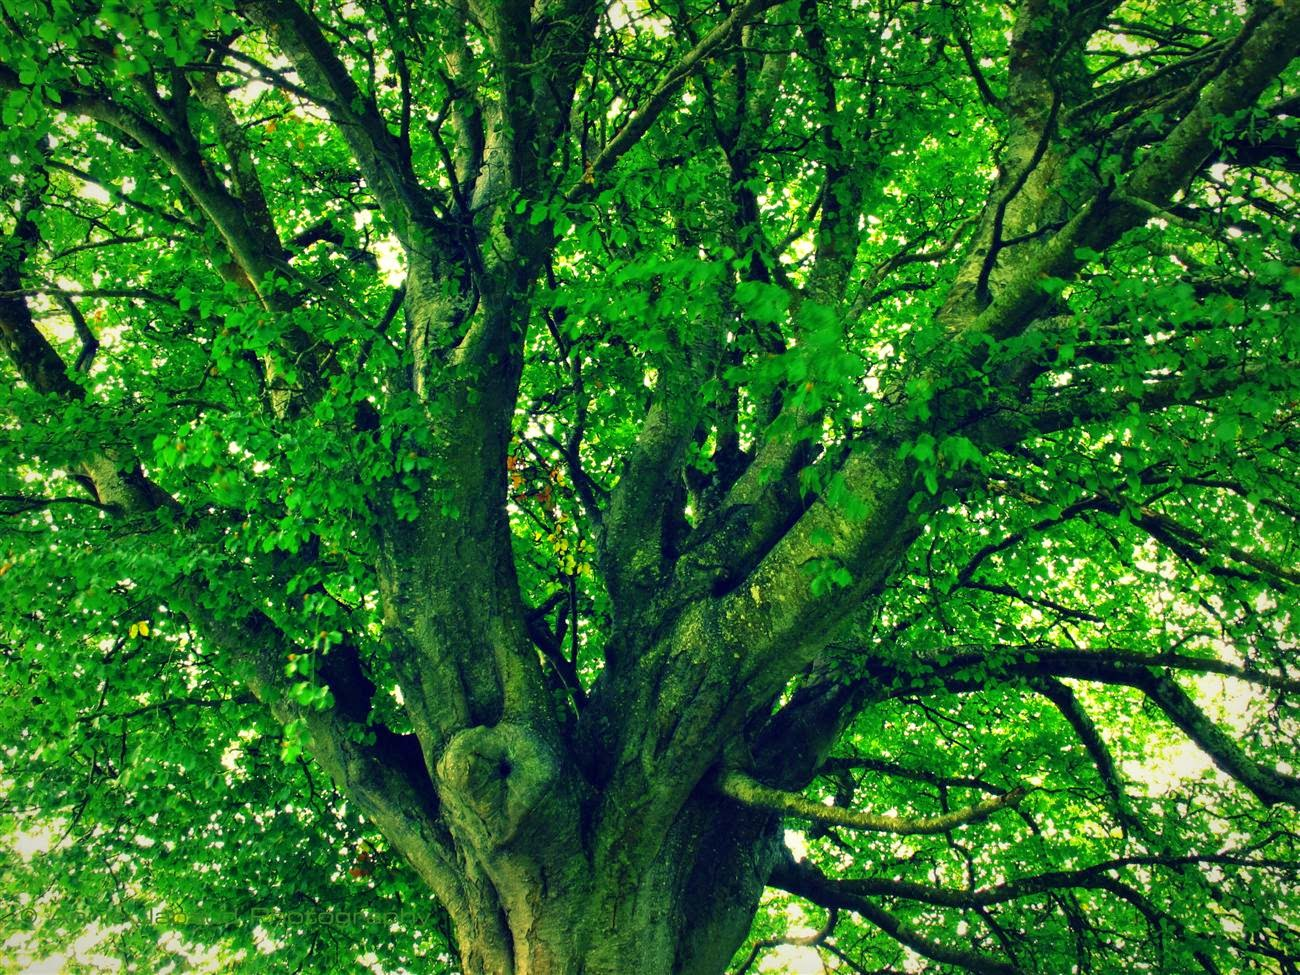 looking up into a big green tree